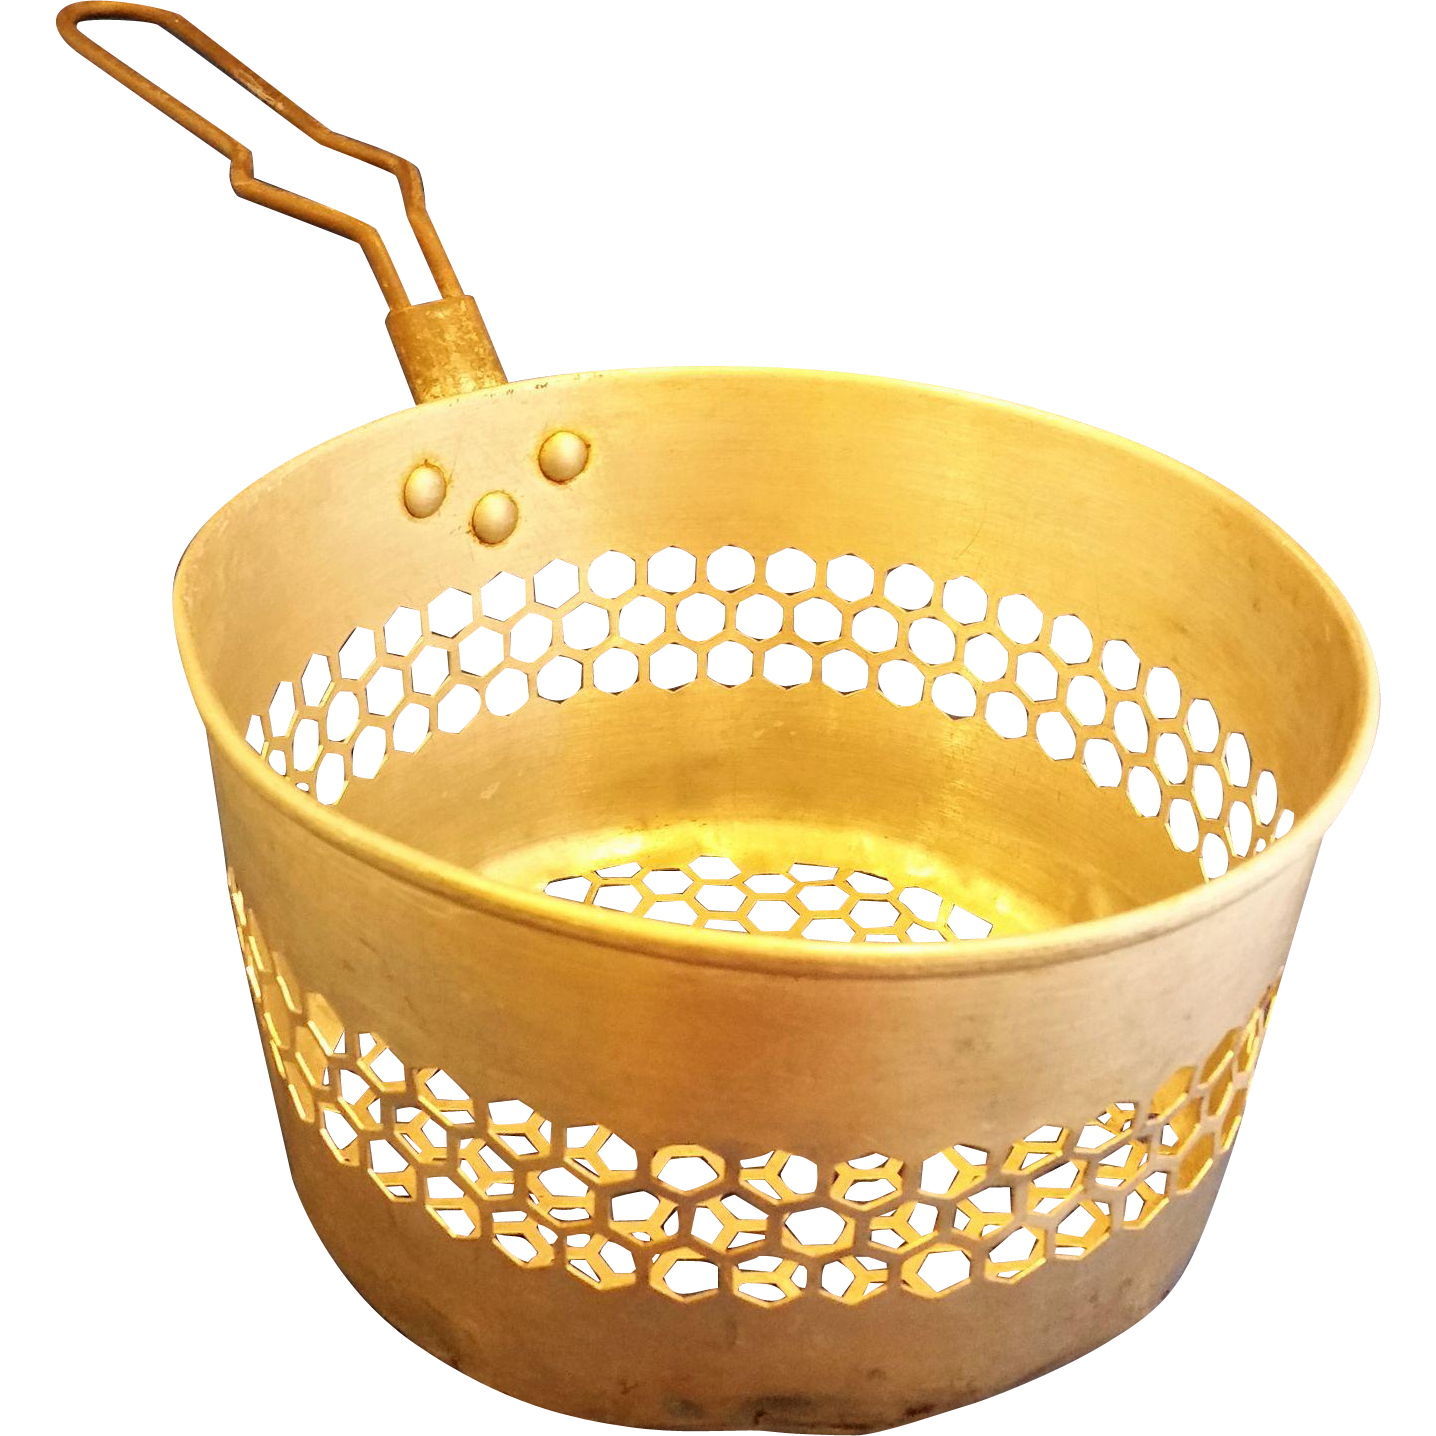 Aluminum Hexagon Perforated Fry Basket Strainer Colander